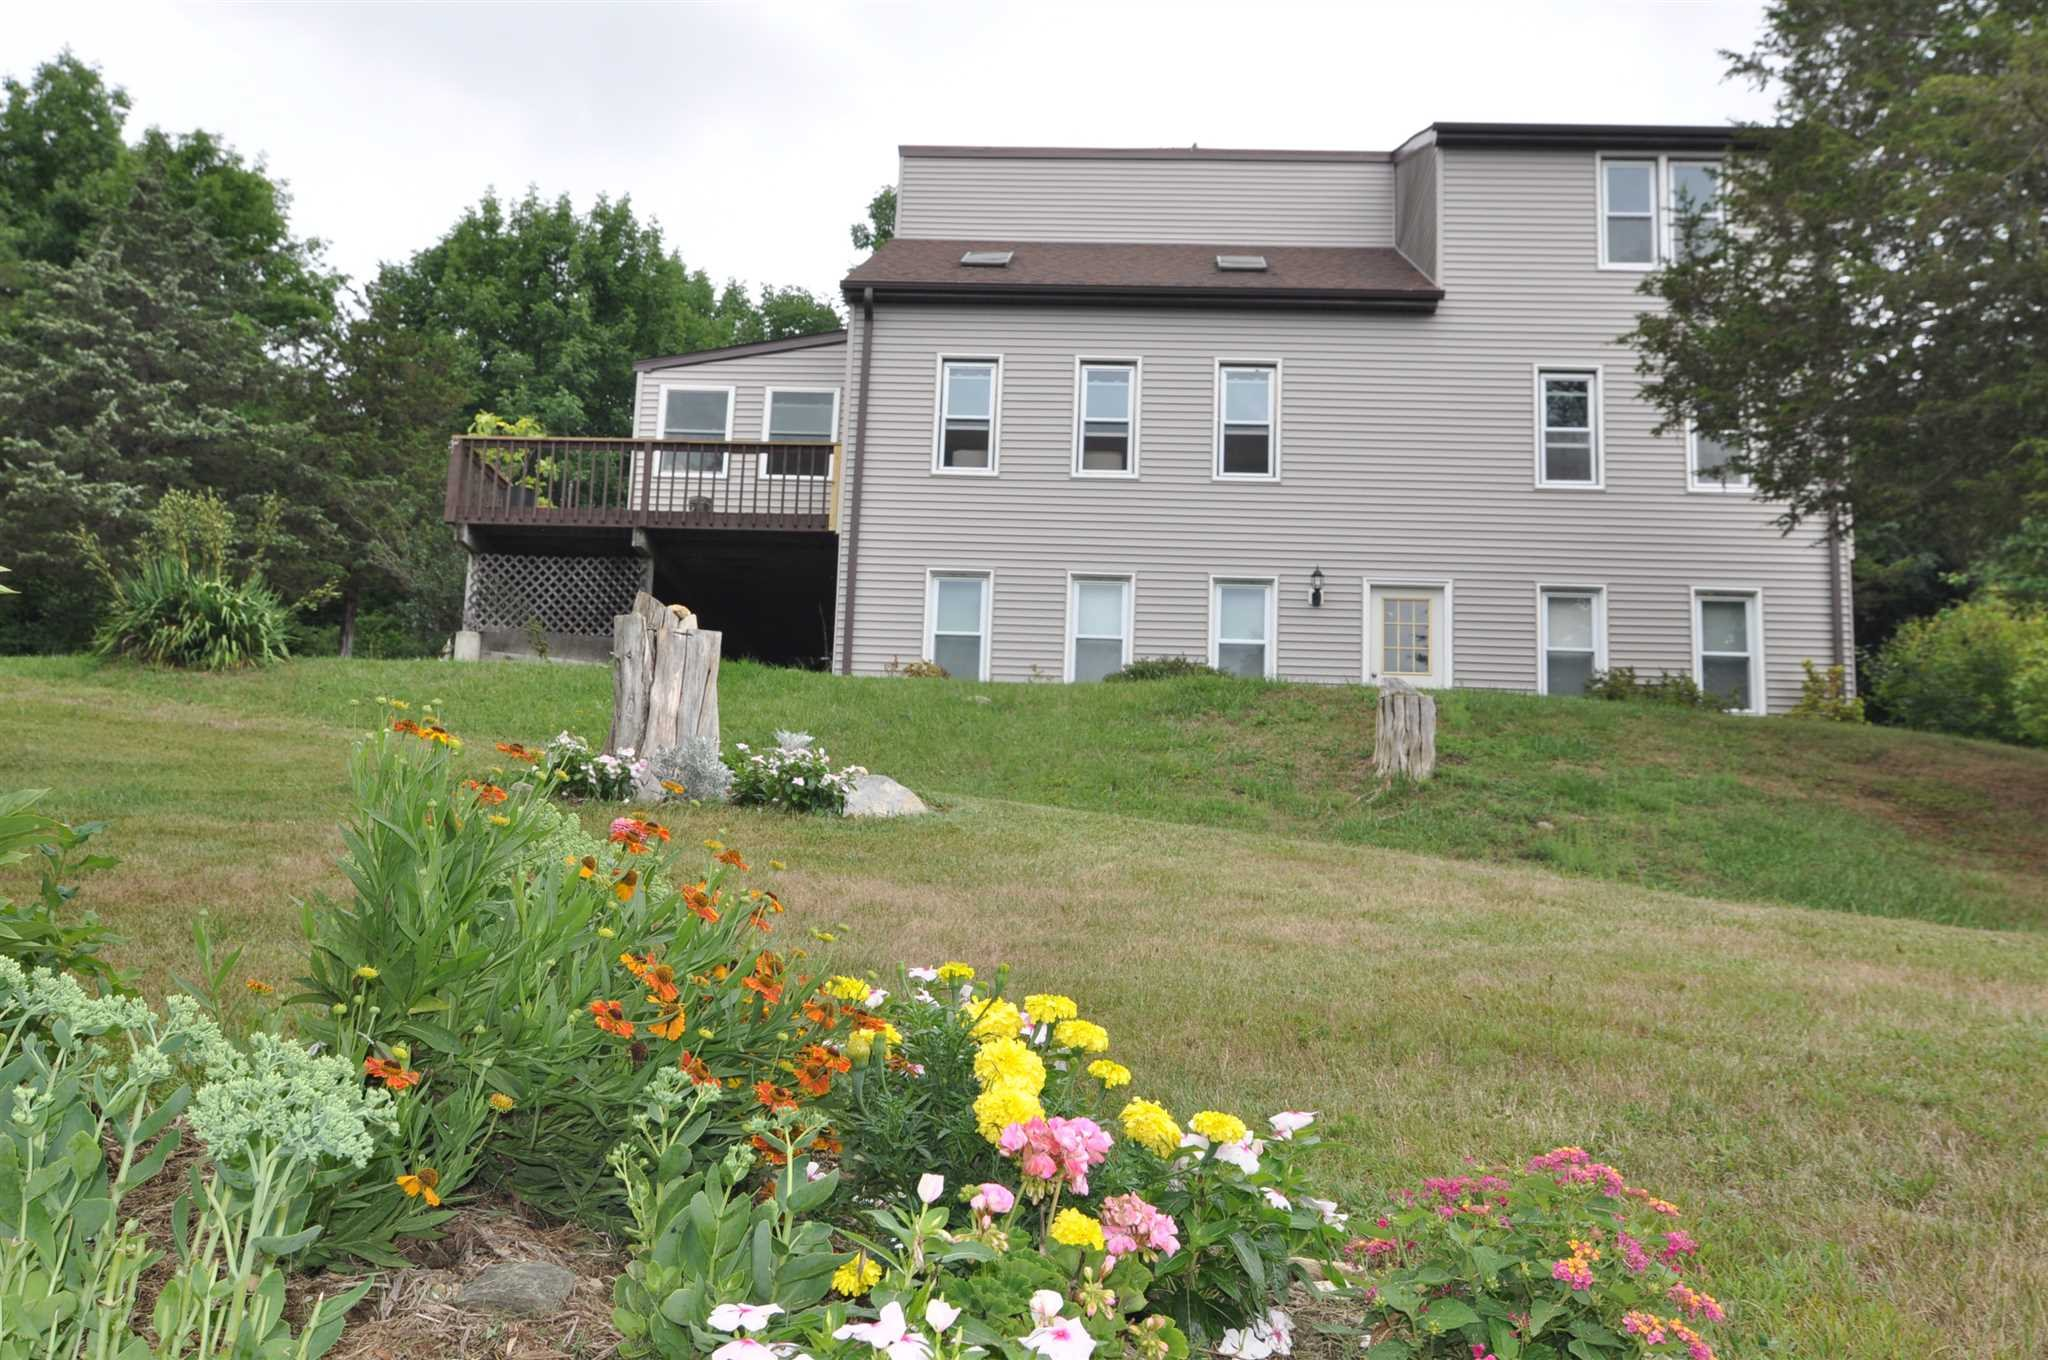 Single Family Home for Sale at 980 BERKSHIRE ROAD 980 BERKSHIRE ROAD Dover Plains, New York 12594 United States